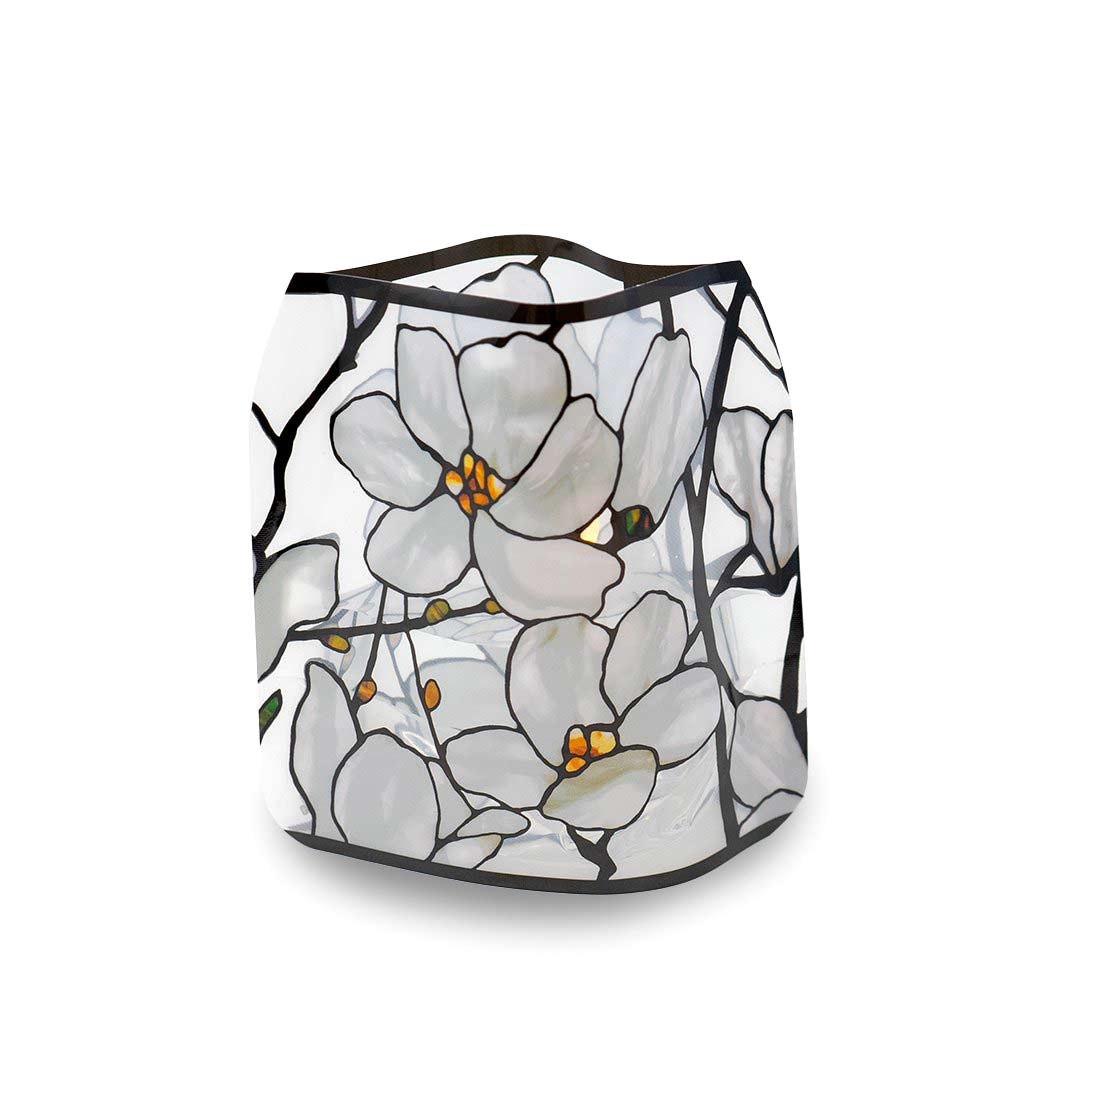 Modgy Tiffany Magnolia Window Luminary Lanterns (set of 4) | The Design Gift Shop